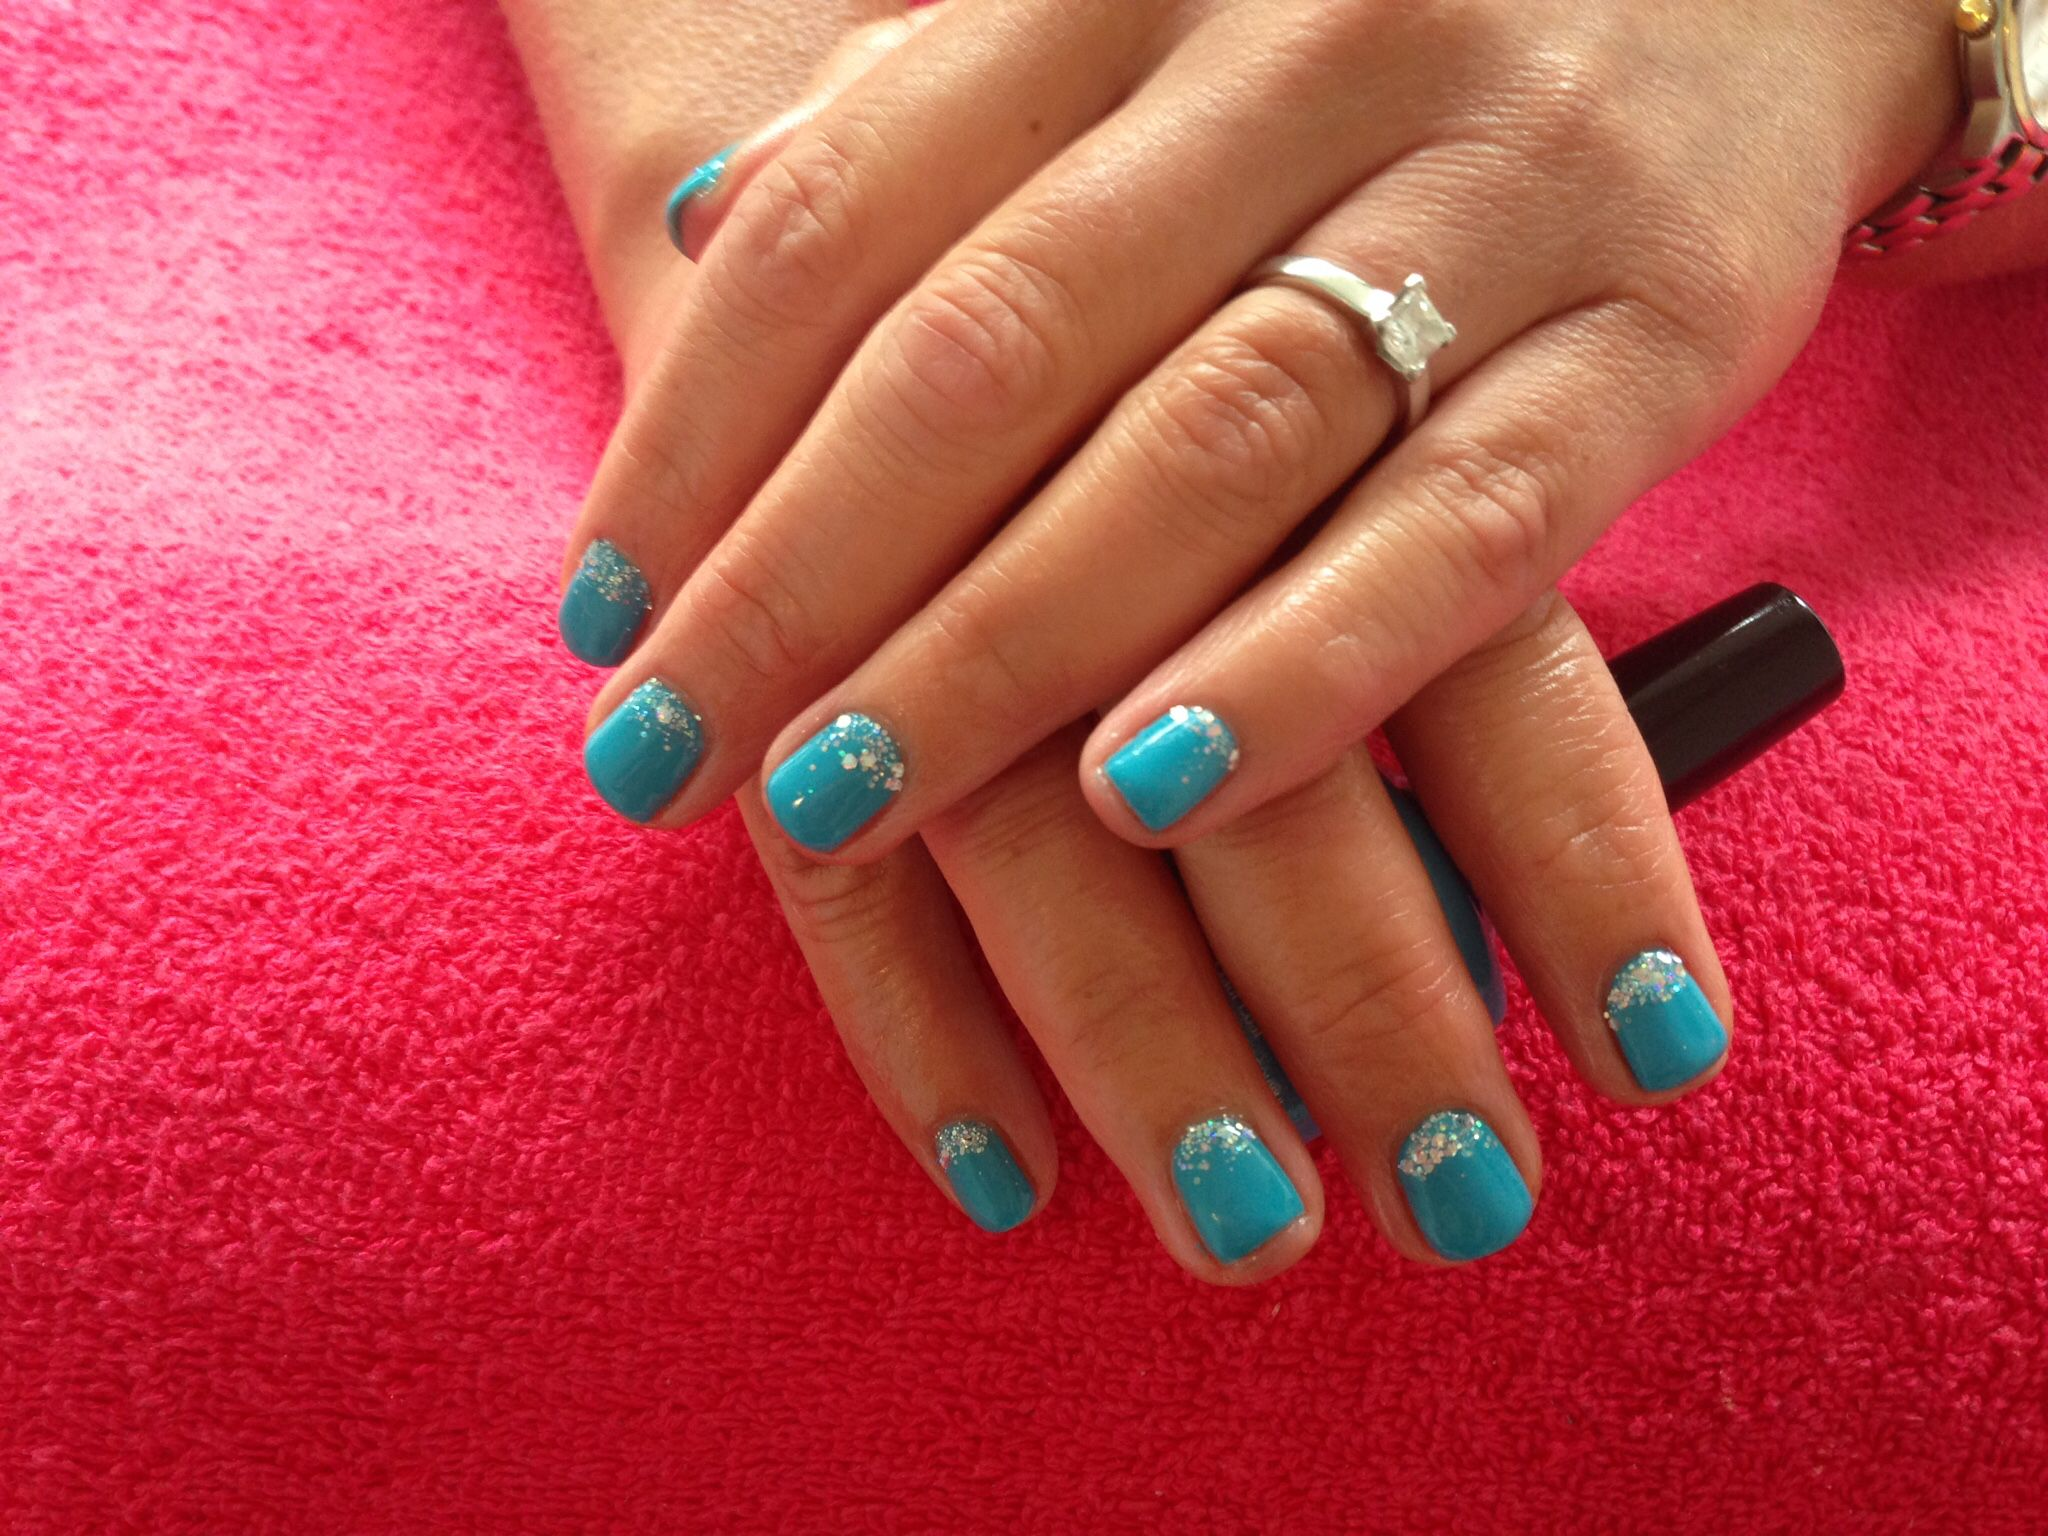 My own nails done with a gorgeous torquiose blue shellac & silver glitter